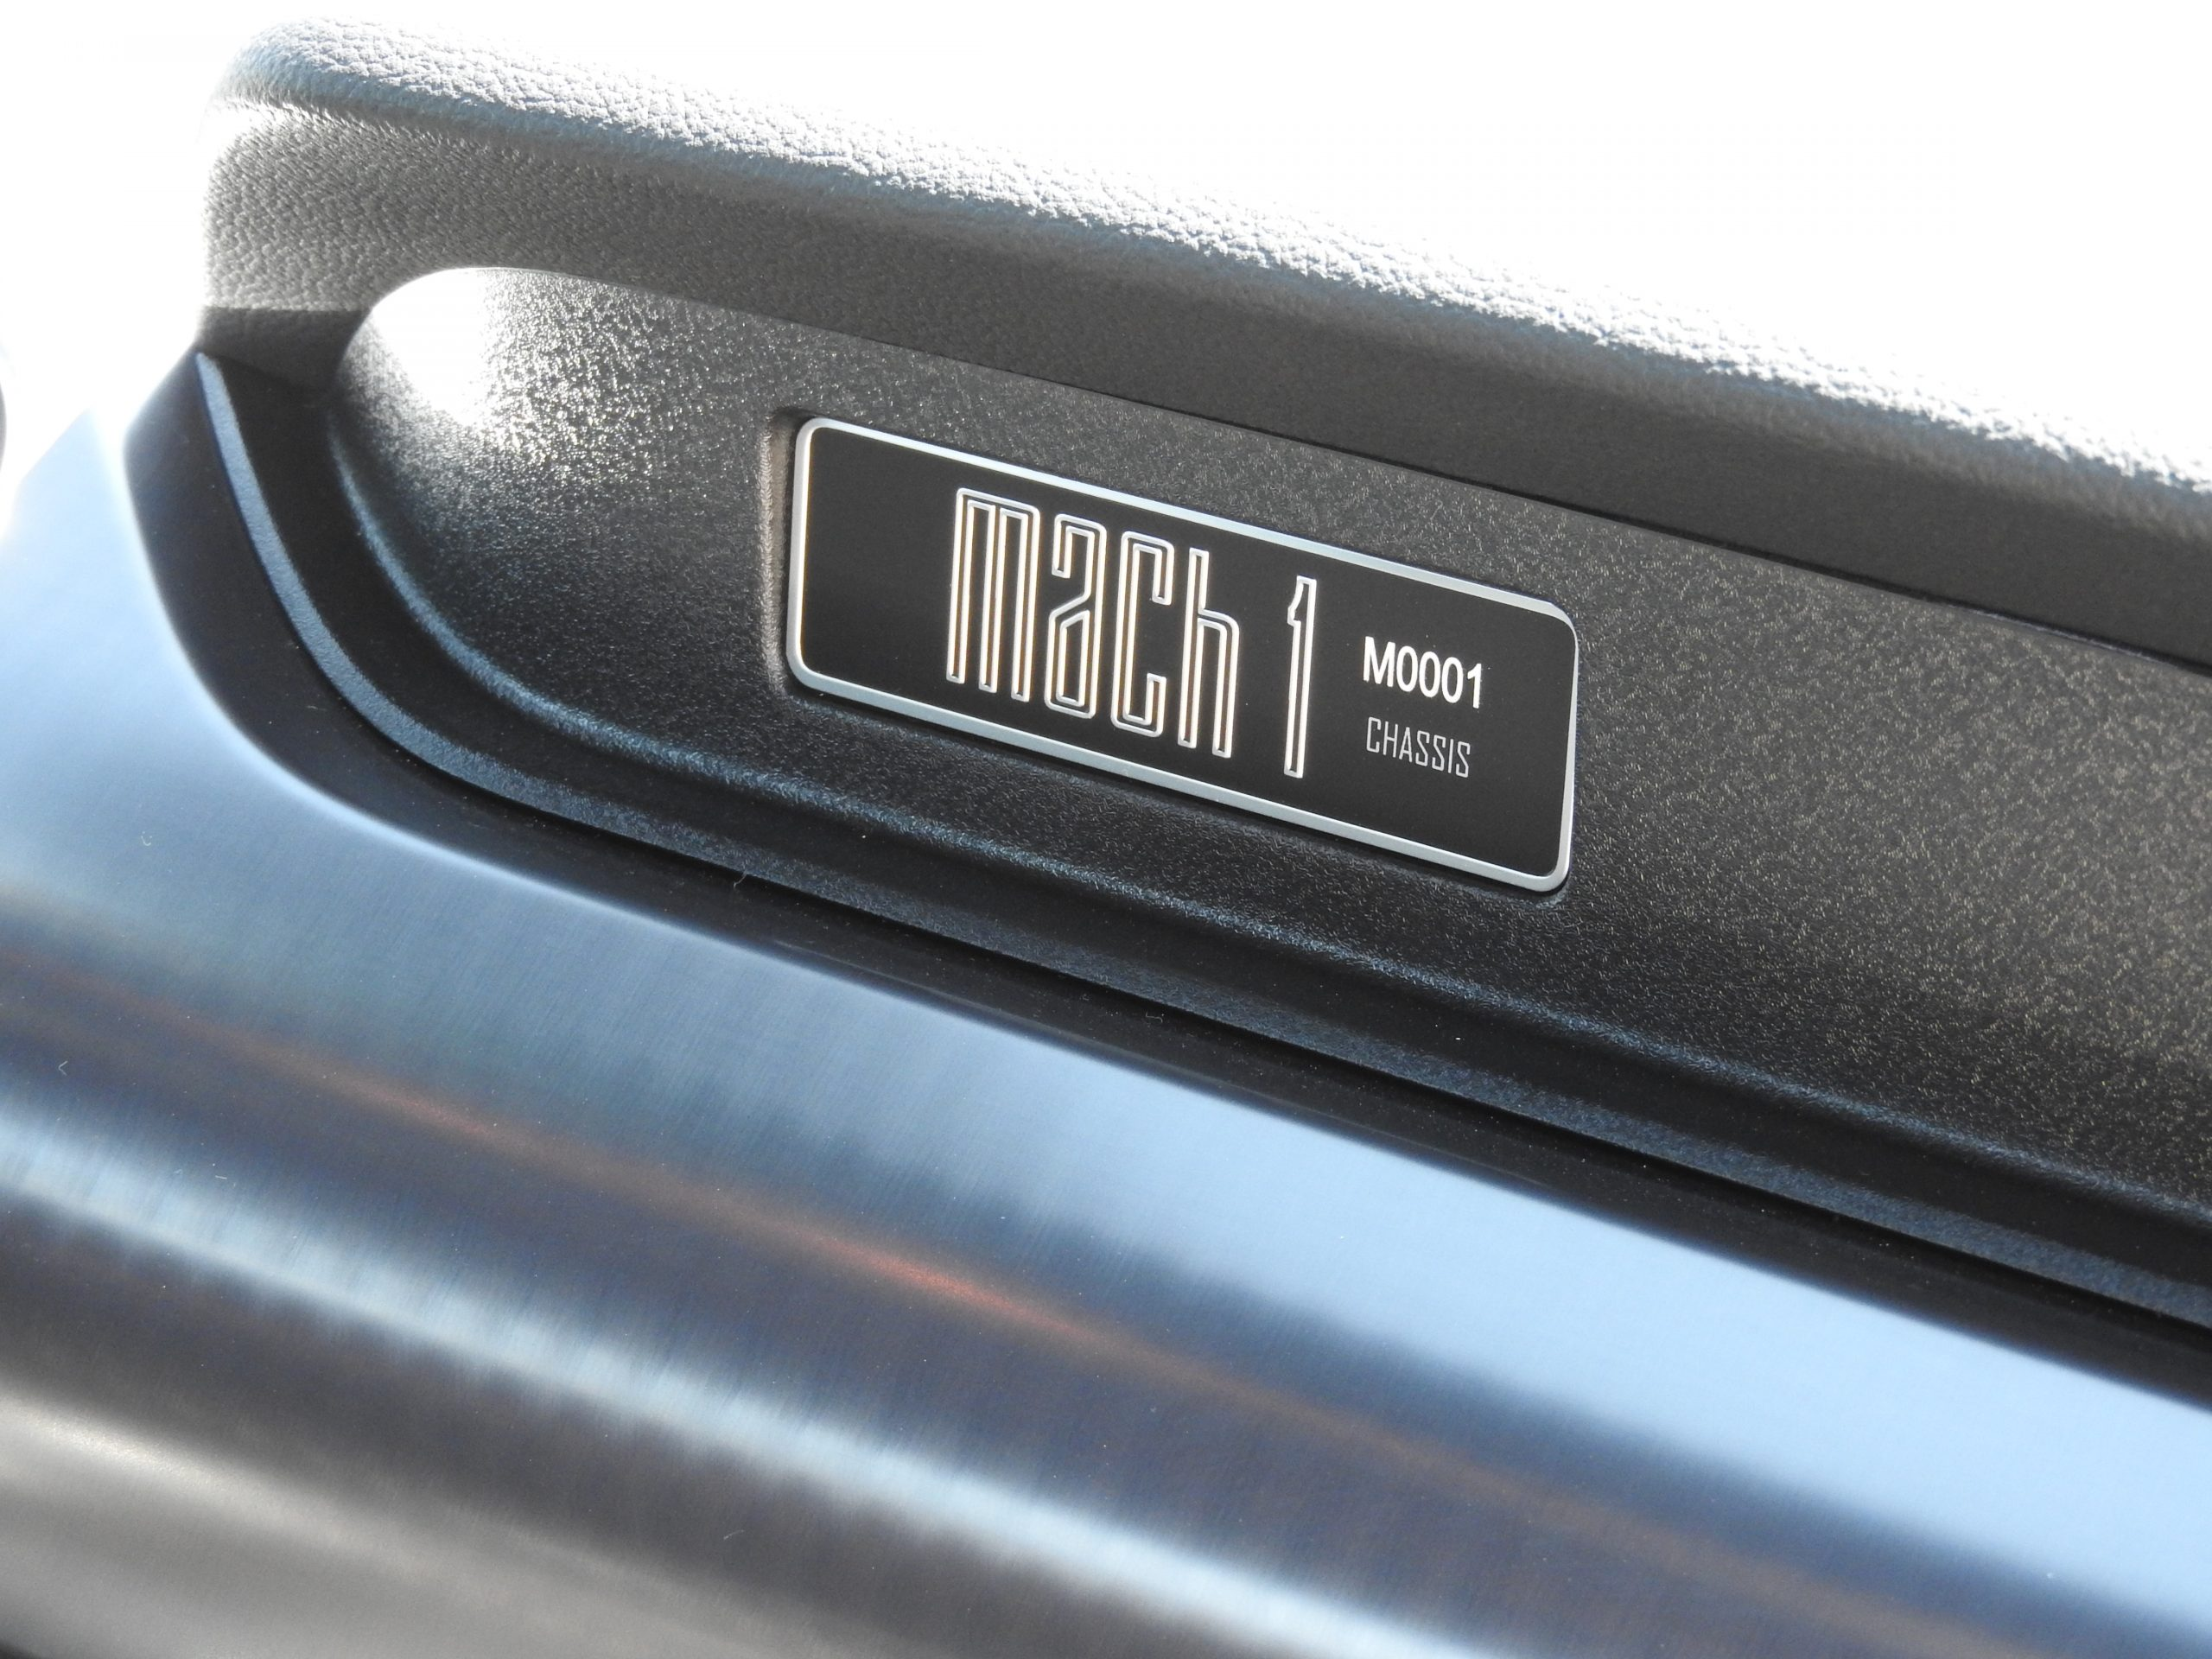 New Mustang Mach 1 mach chassis emblem